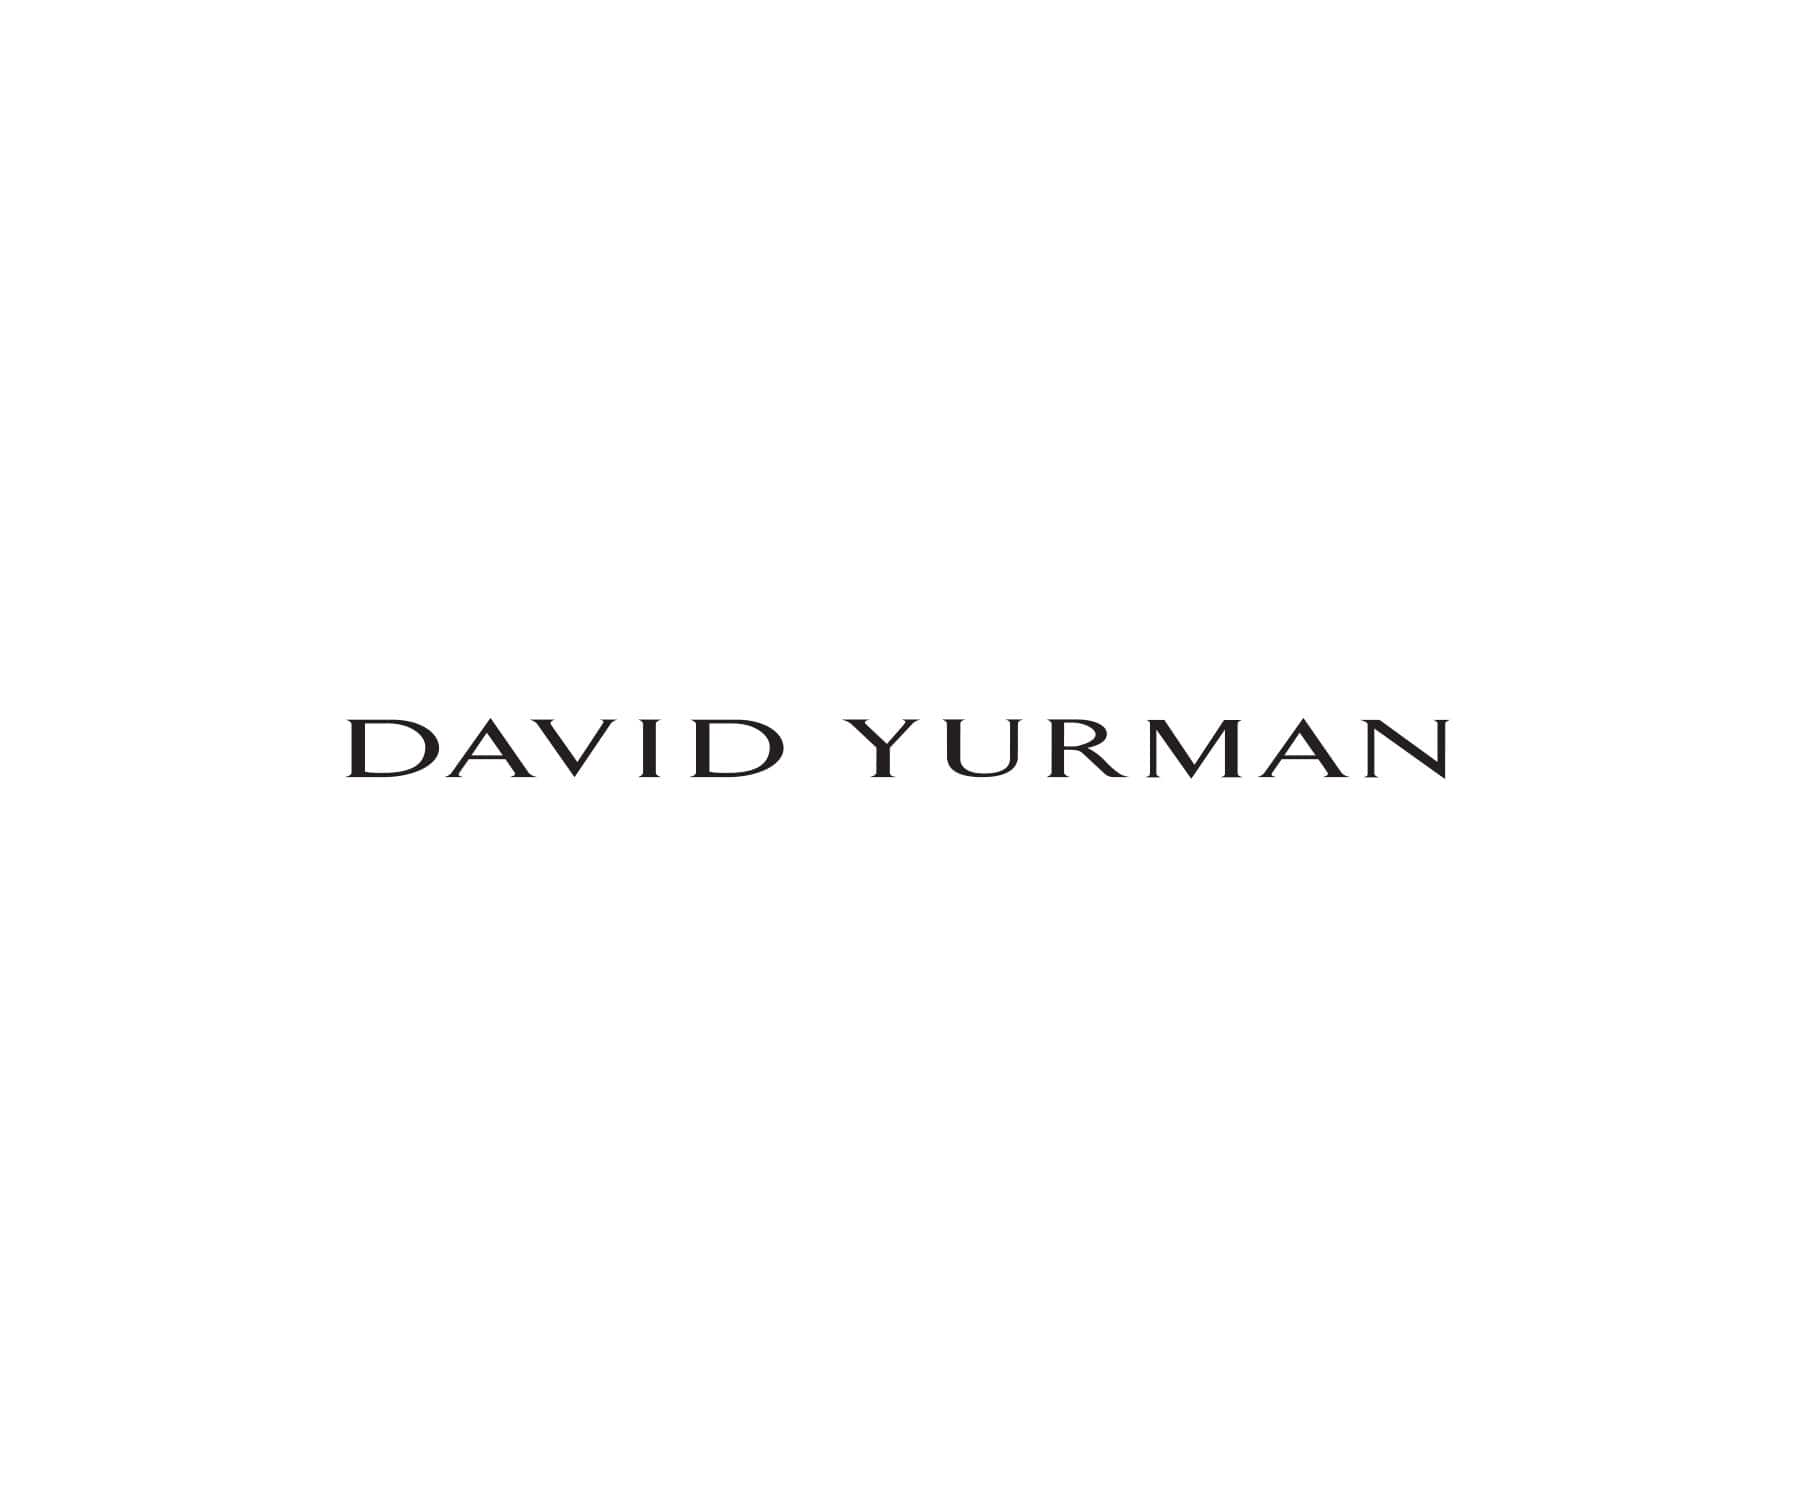 """In creating this collection, David and Sybil Yurman were inspired by the centuries-old craft of origami to imbue metal with a sense of malleability, draping silver and gold into comfortable, wearable sculpture. """"When you put on DY Origami, there is a fluid, sensuous feeling,"""" says Sybil. The jewelry moves and bends with you."""""""